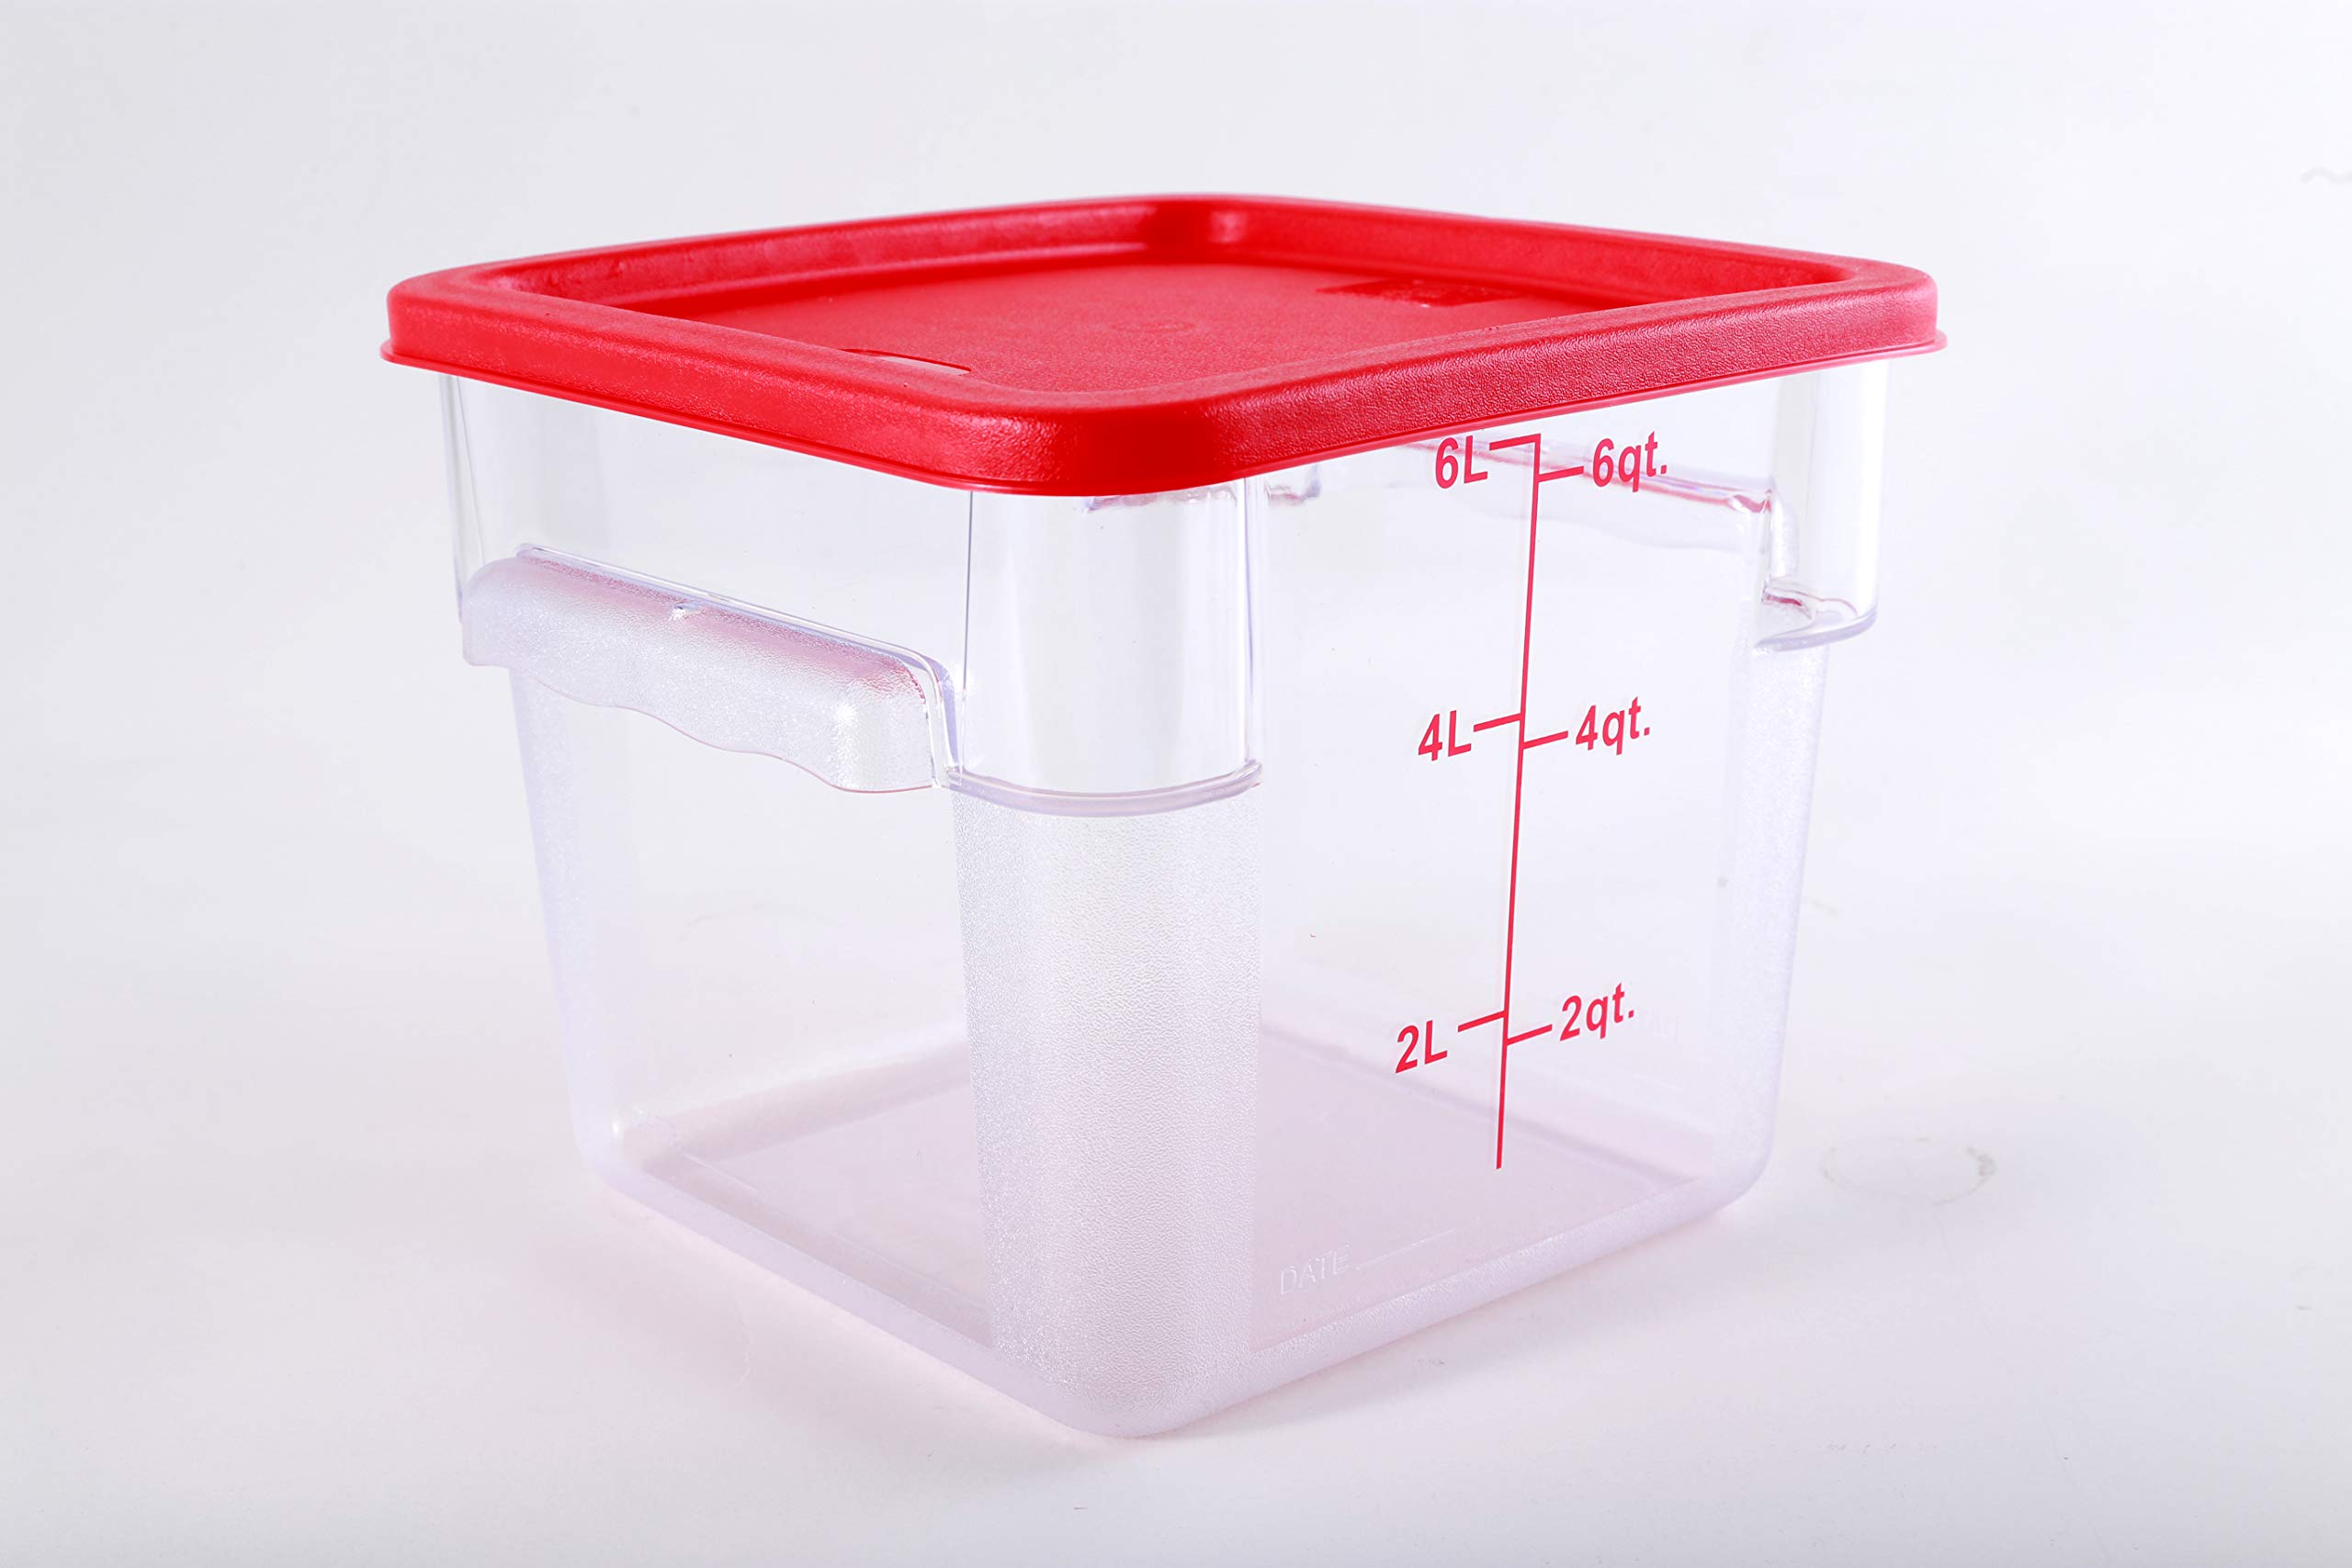 Hakka 6 Qt Commercial Grade Square Food Storage Containers with Lids,Polycarbonate,Clear - Case of 5 by HAKKA FOOD PROCESSING (Image #3)